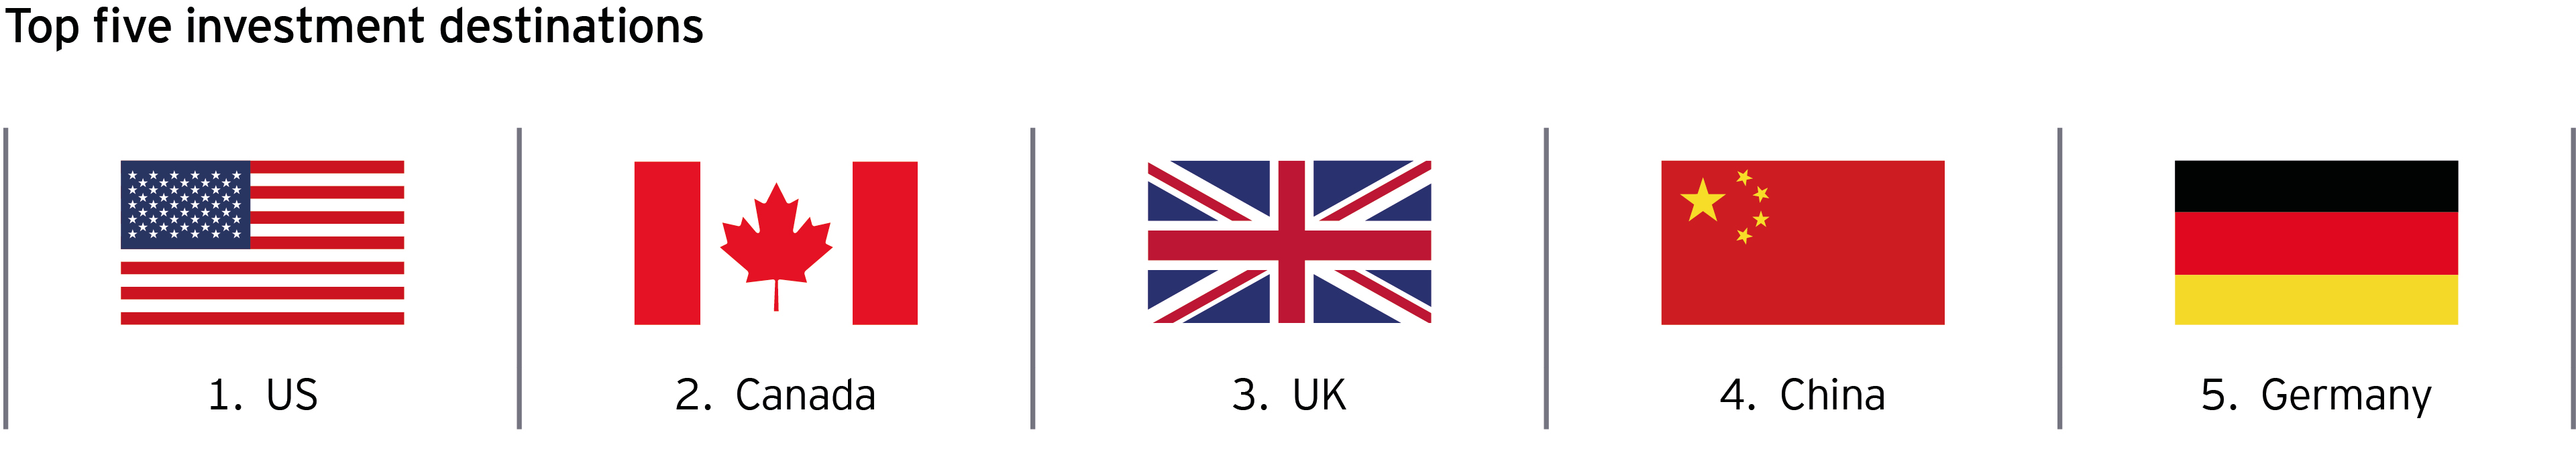 Illustration of flags to show the top five investment destinations: 1. United States, 2. Canada, 3. United Kingdom, 4. China, 5. Germany